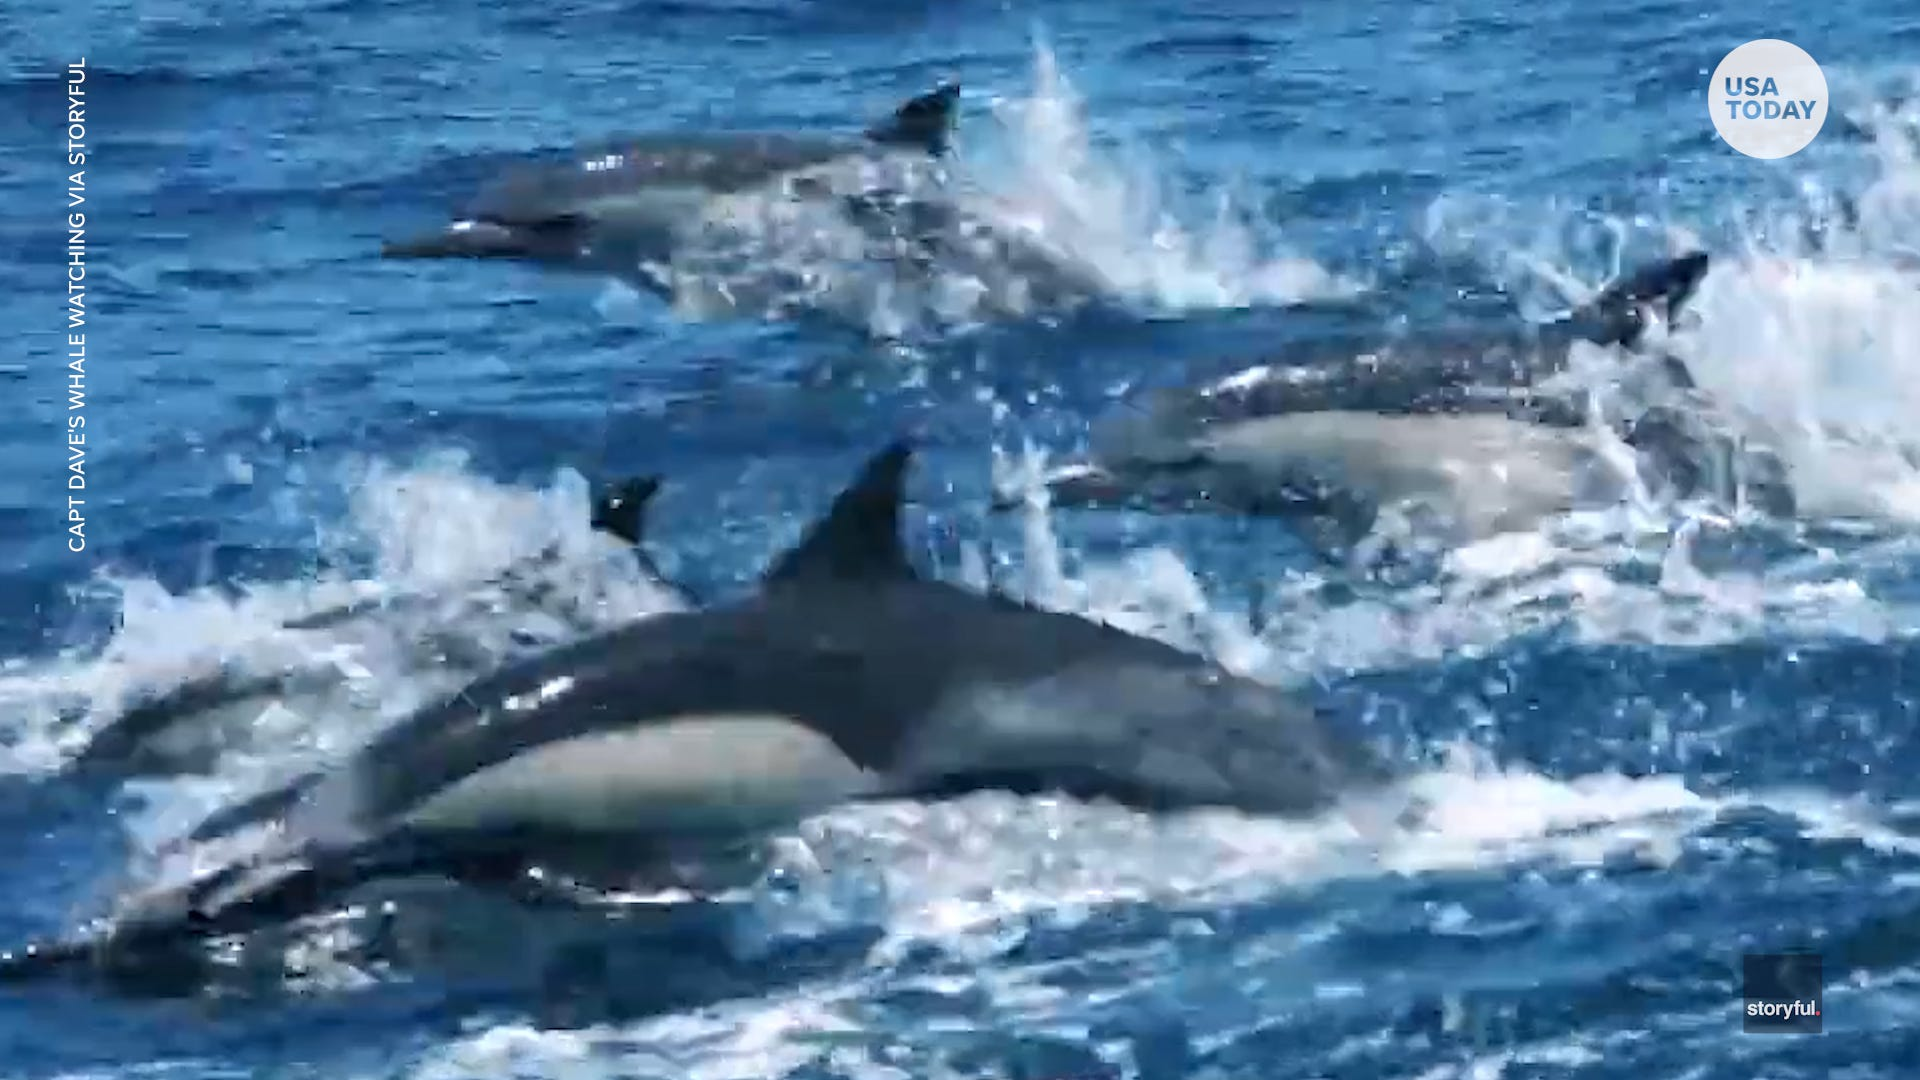 Dolphins stampede alongside whale-watching boat in California